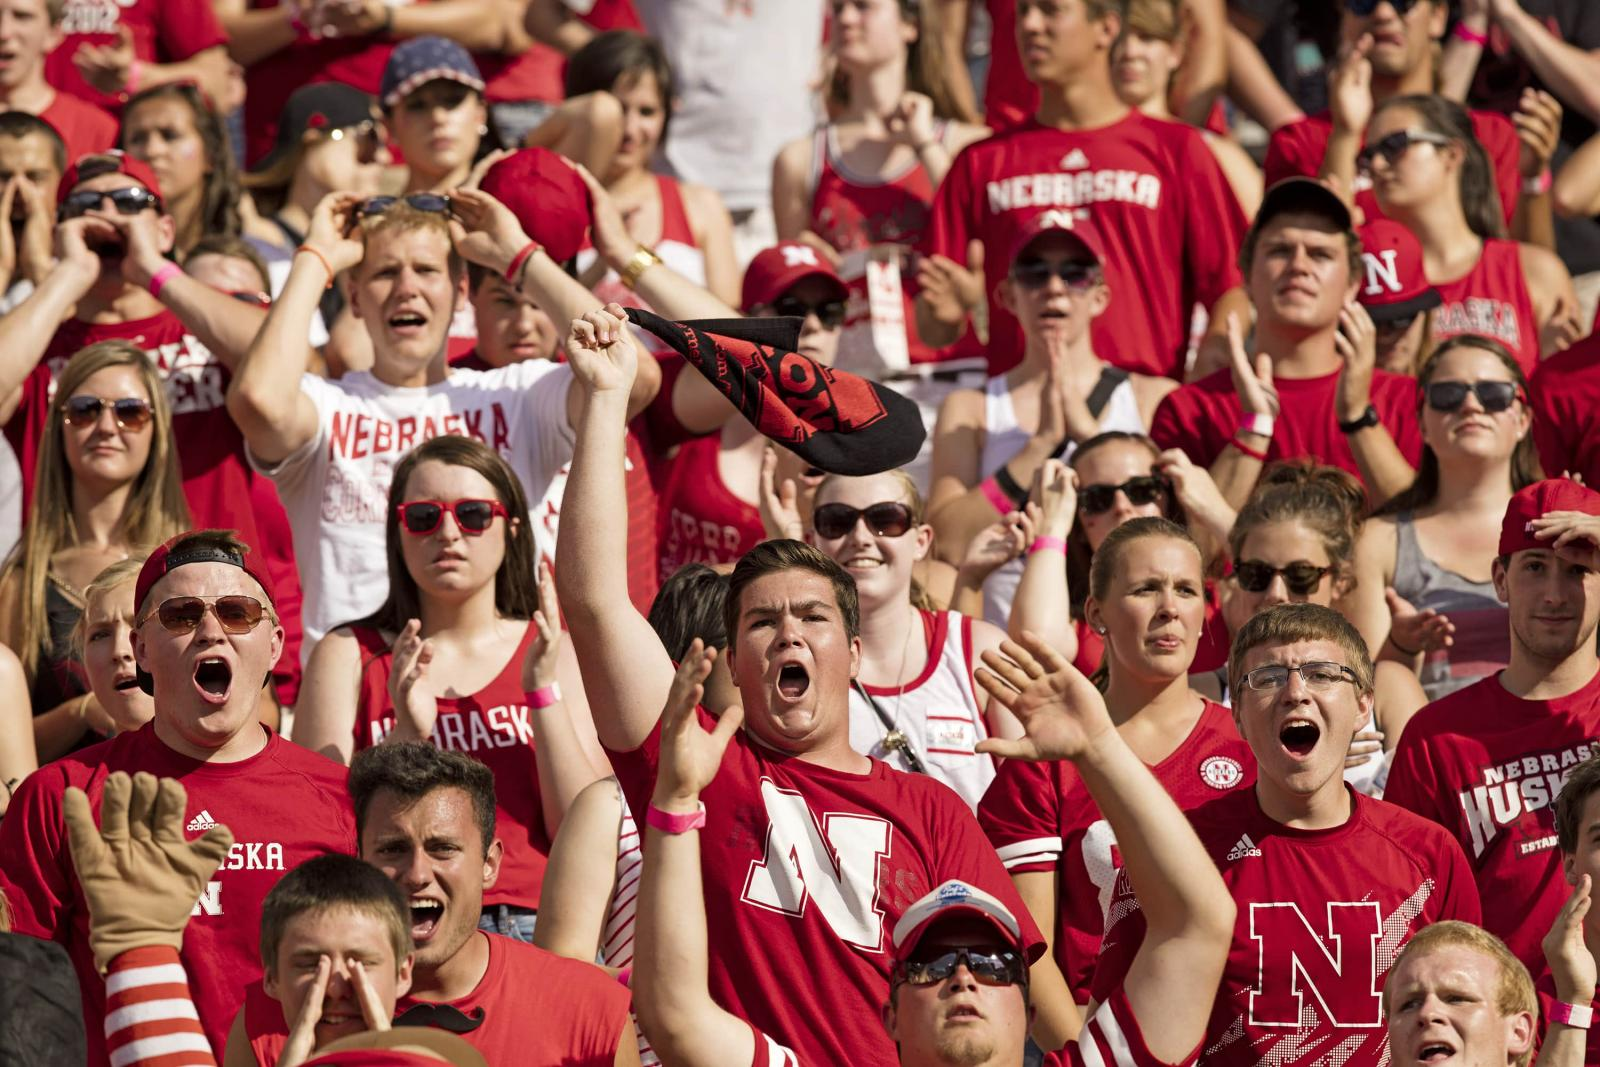 Students at a Nebraska Football game.